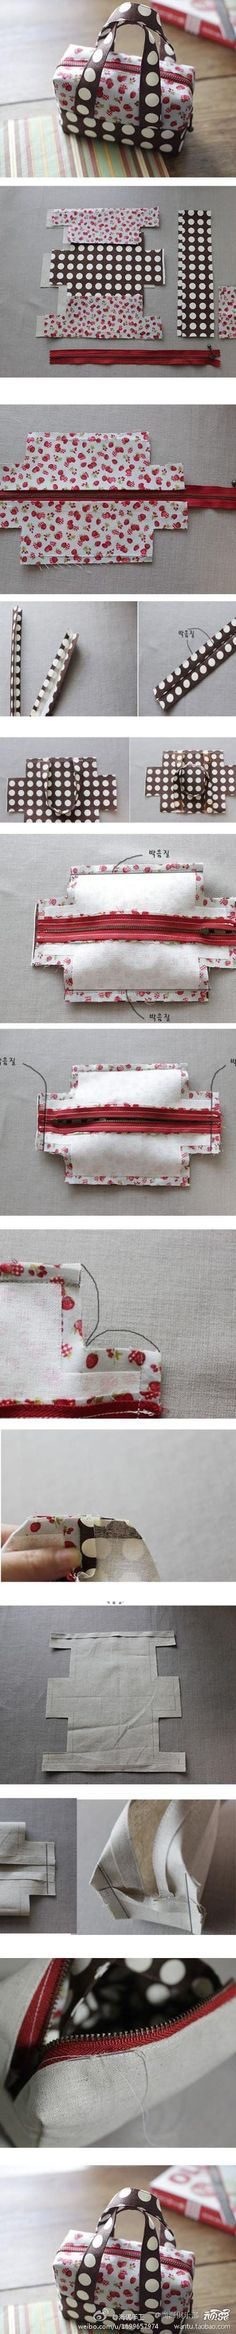 DIY Lunch #do it yourself gifts #diy gifts #creative handmade gifts| http://diy-gifts.kira.lemoncoin.org